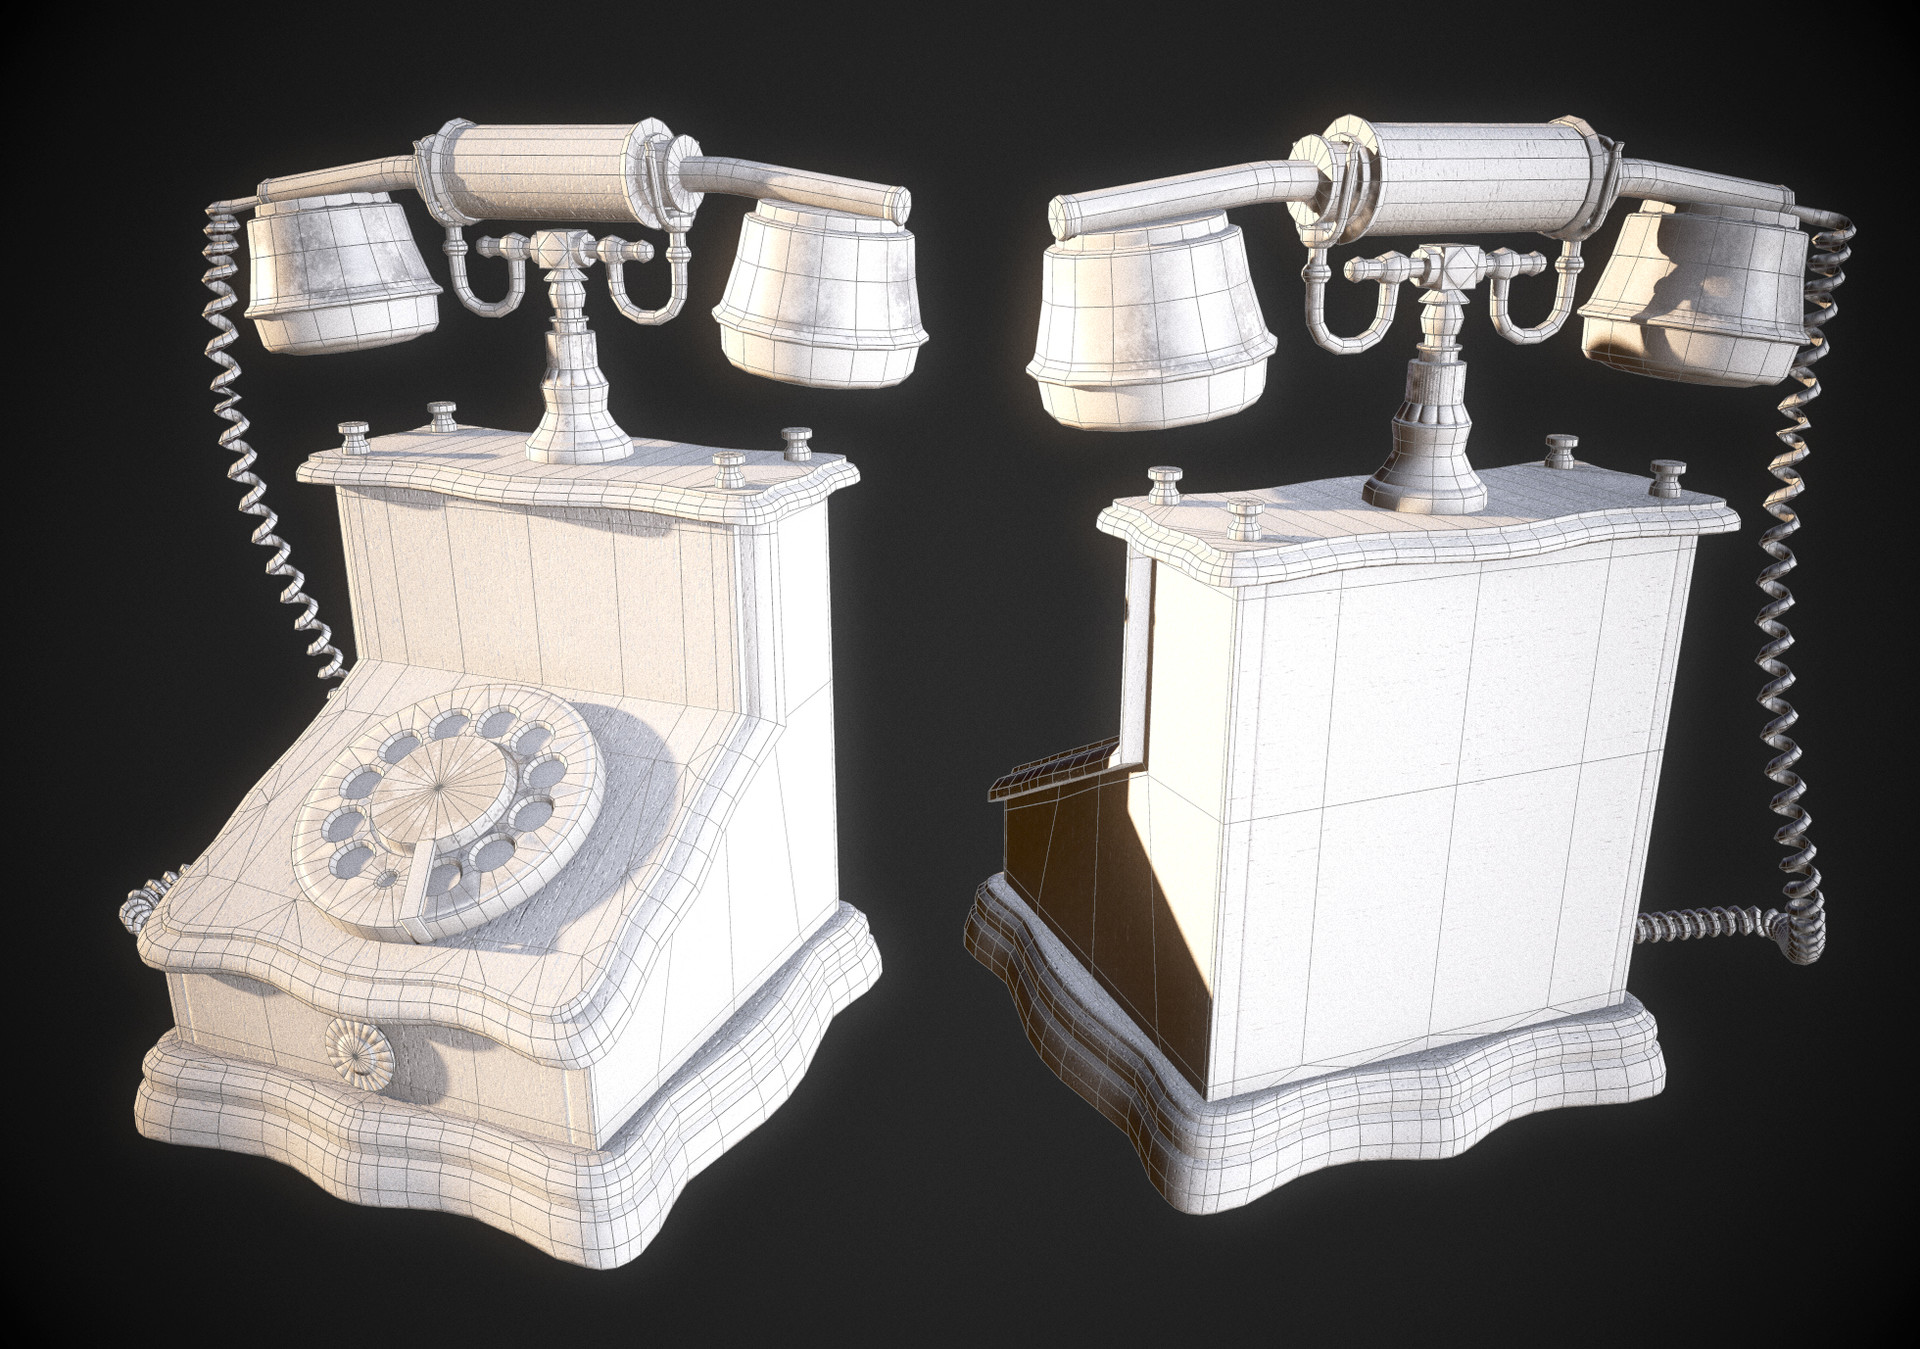 Hugo beyer antiquephone render4